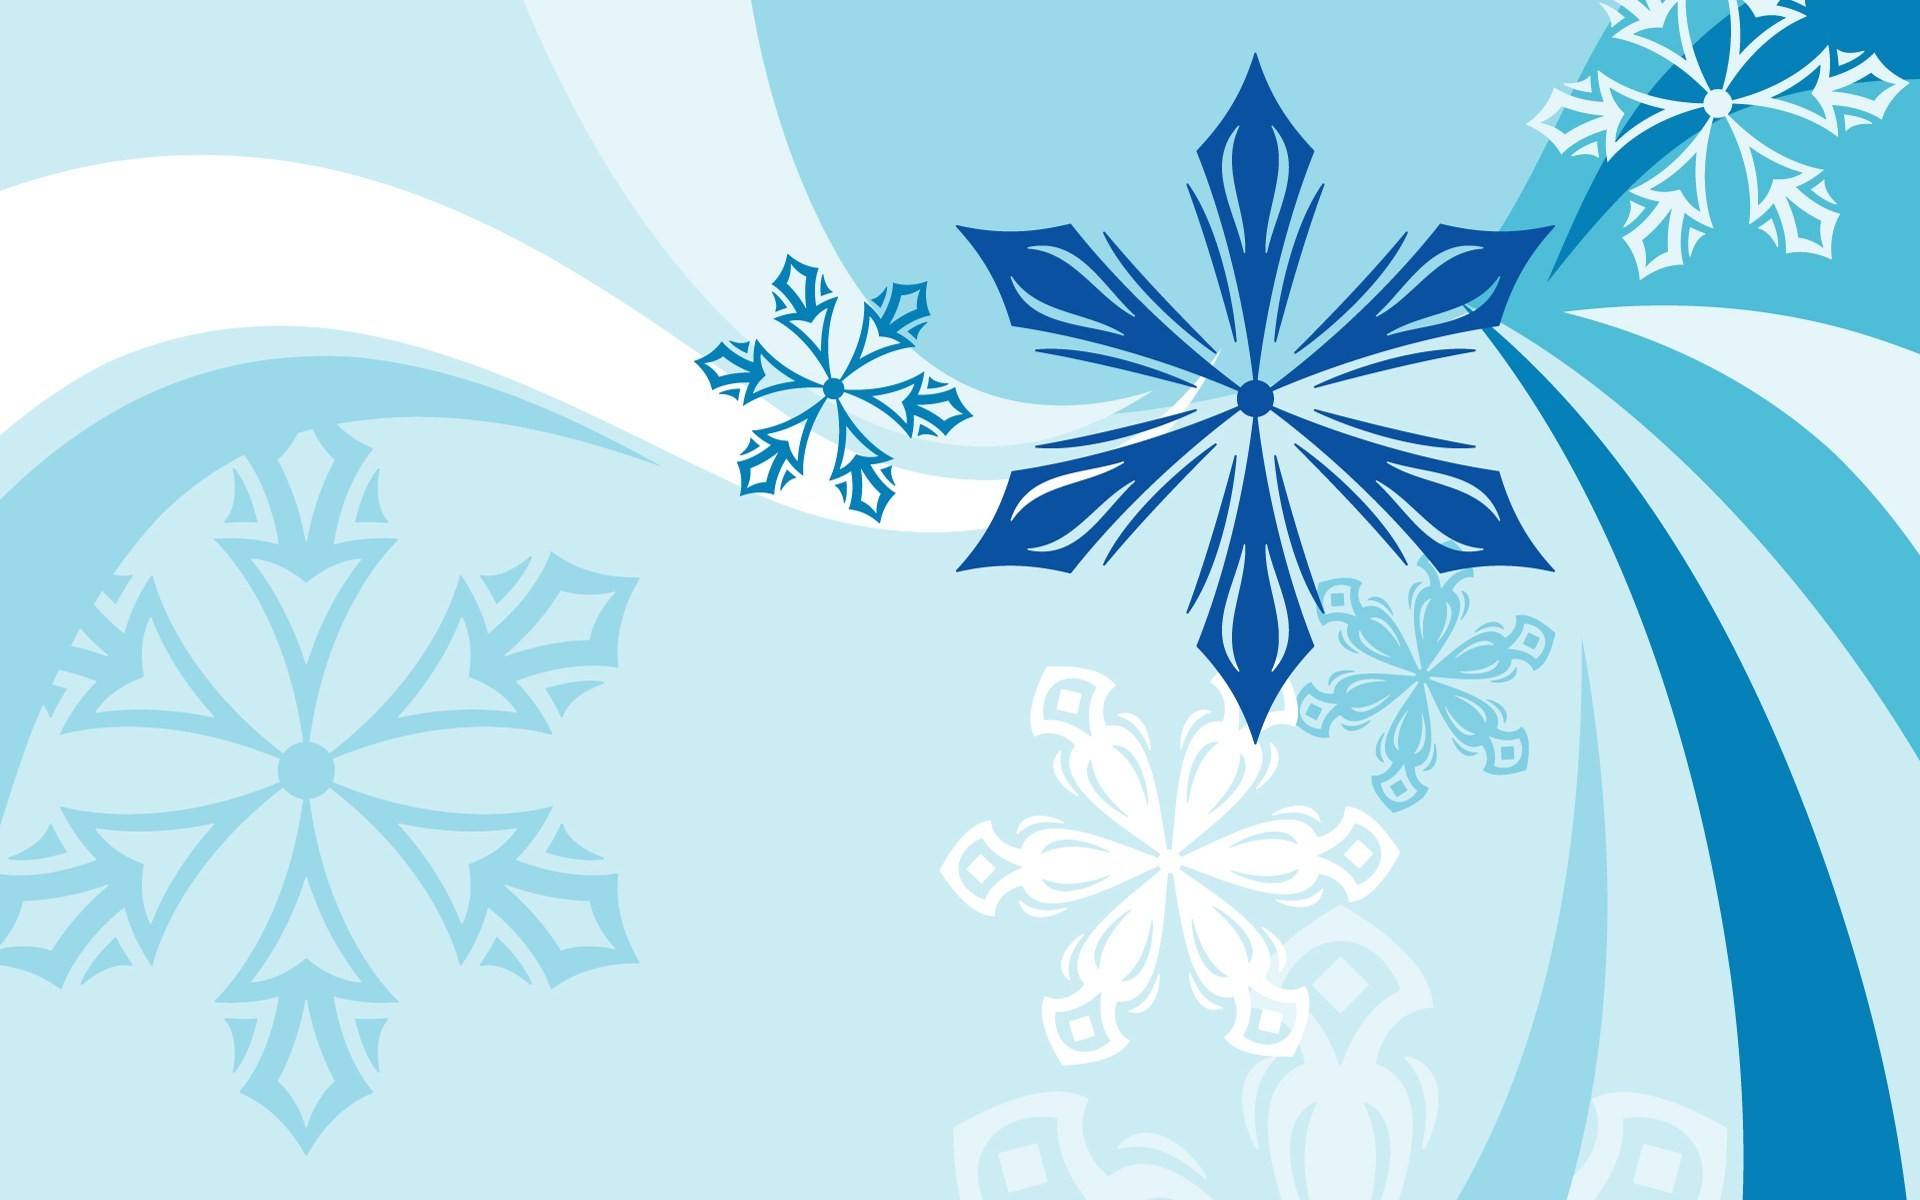 Winter wonderland clip art top hd images for free image #10108.